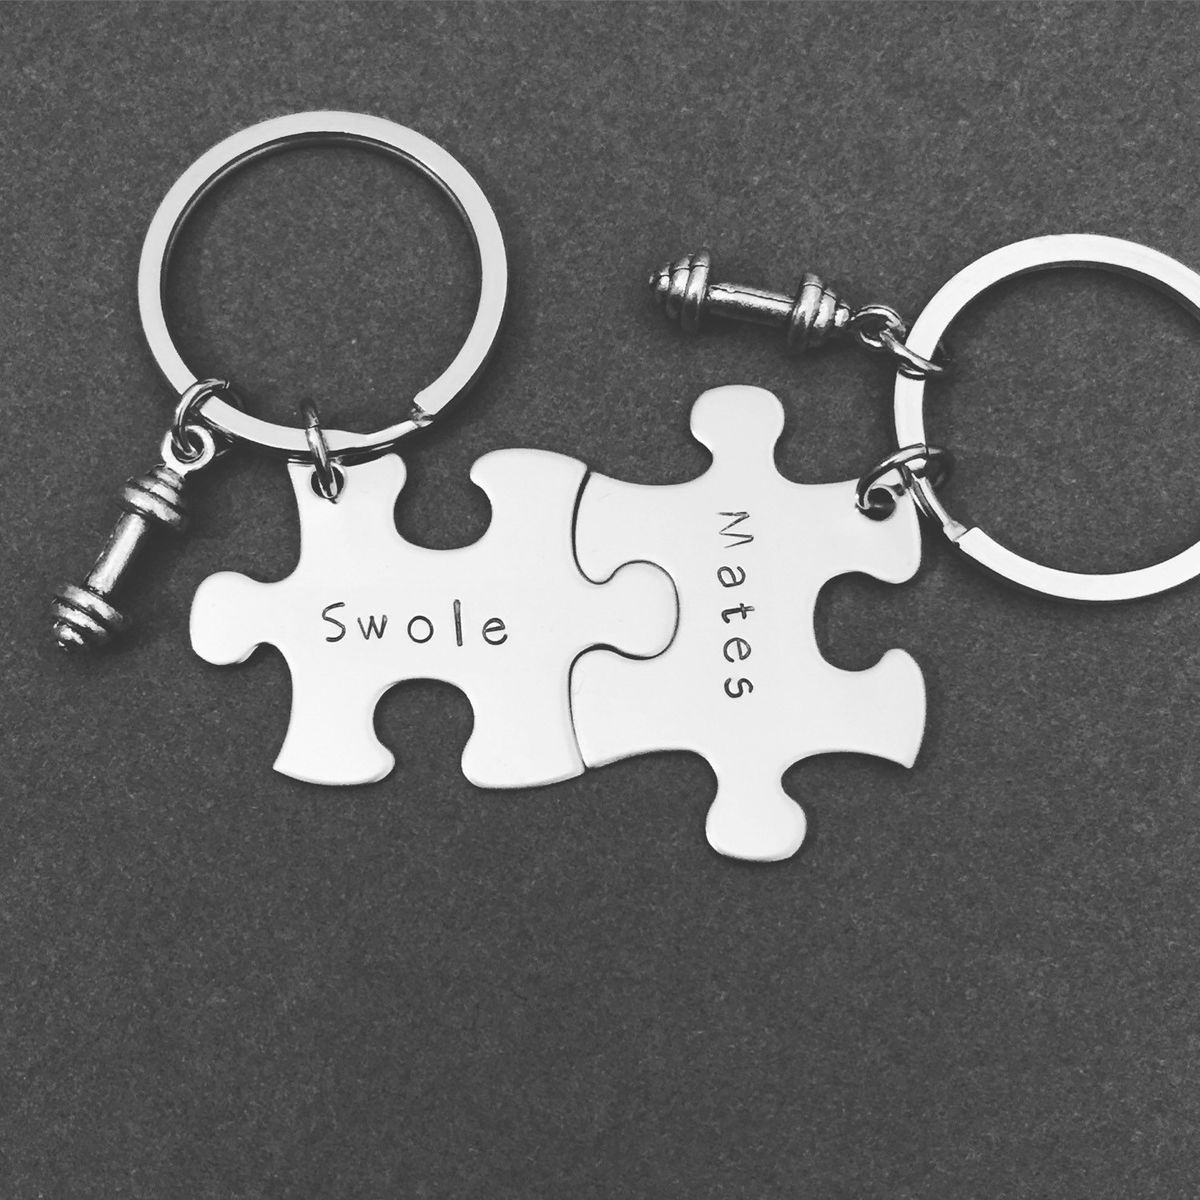 Swole Mates keychains, Puzzle Keychains with dumbell charms - product image